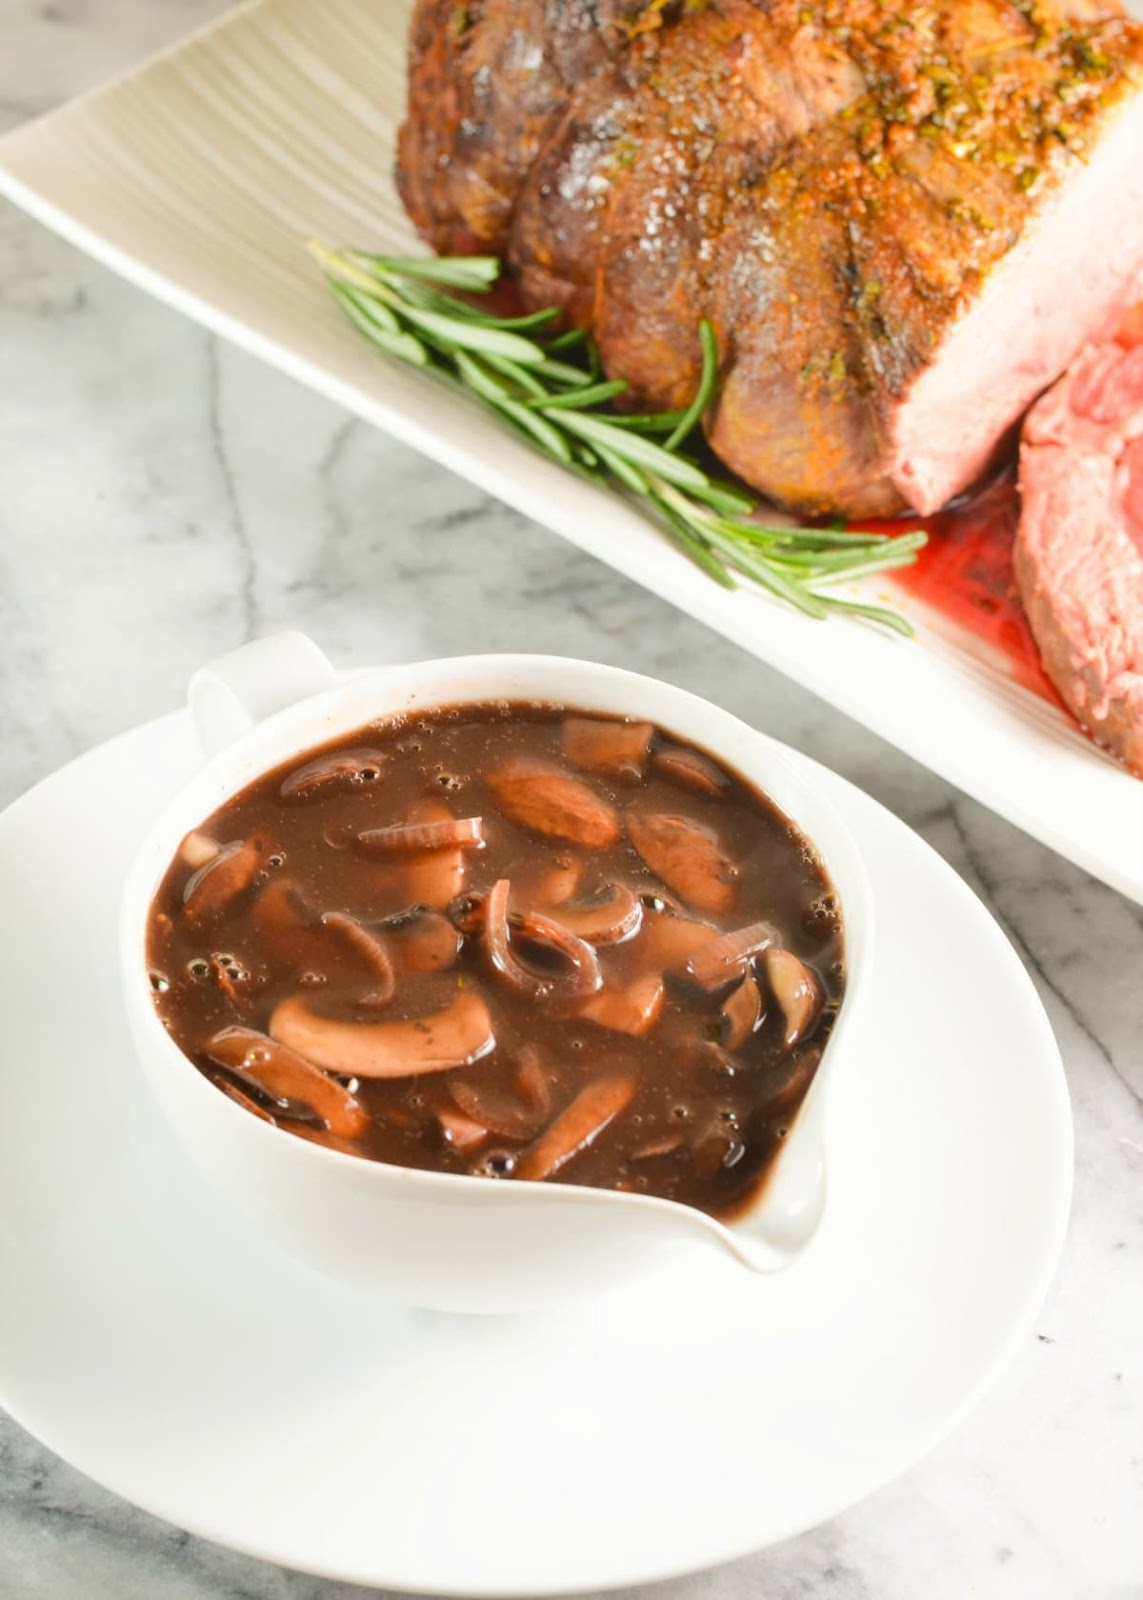 Mushroom Red Wine Gravy next to Sirloin Roast Beef recipe from Serena Bakes Simply From Scratch.